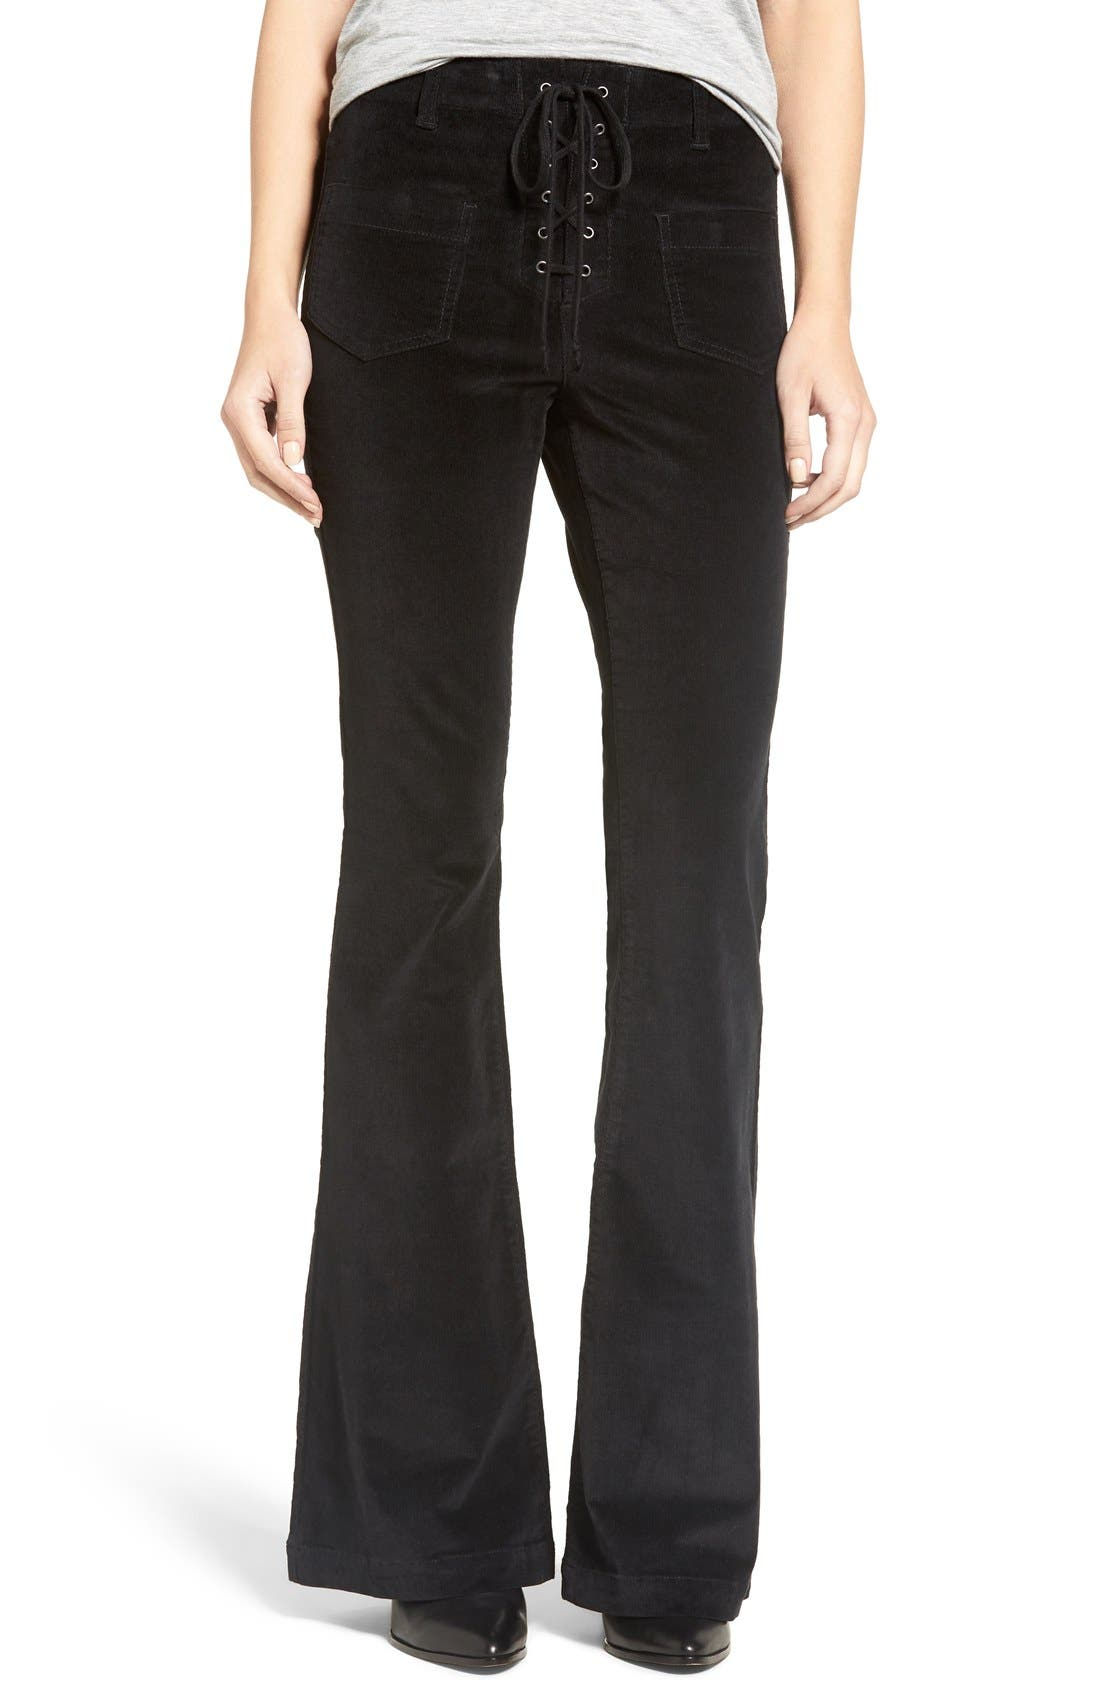 Alternate Image 1 Selected - Sun & Shadow Lace-Up Flare Corduroy Pants